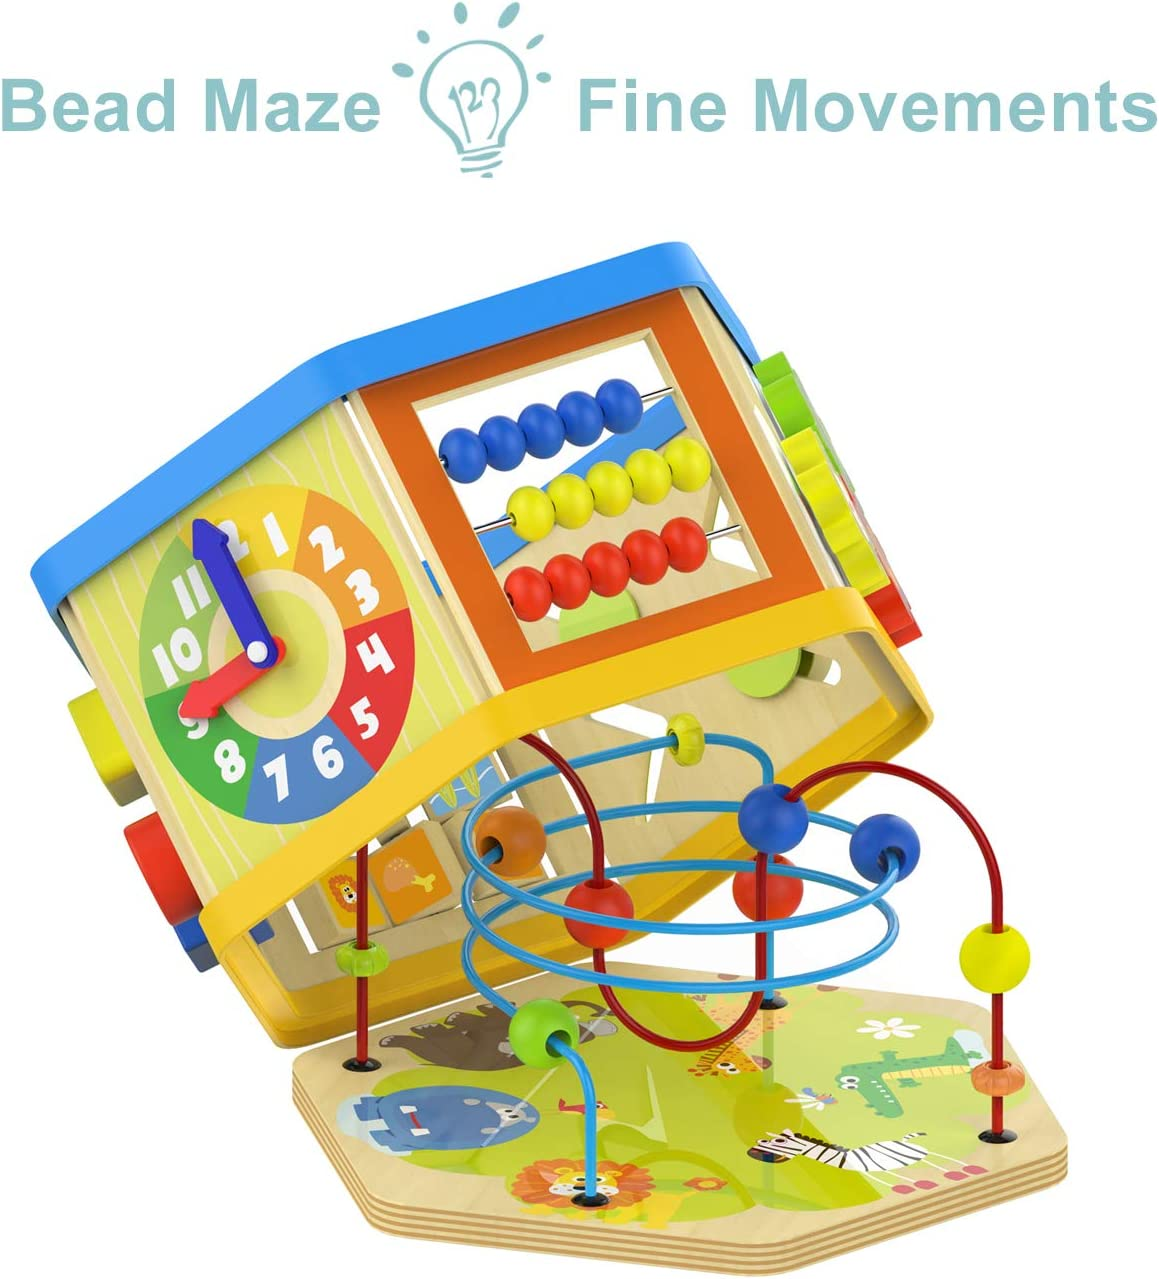 TOP BRIGHT Activity Cube Toys Baby Educational Wooden Bead ...